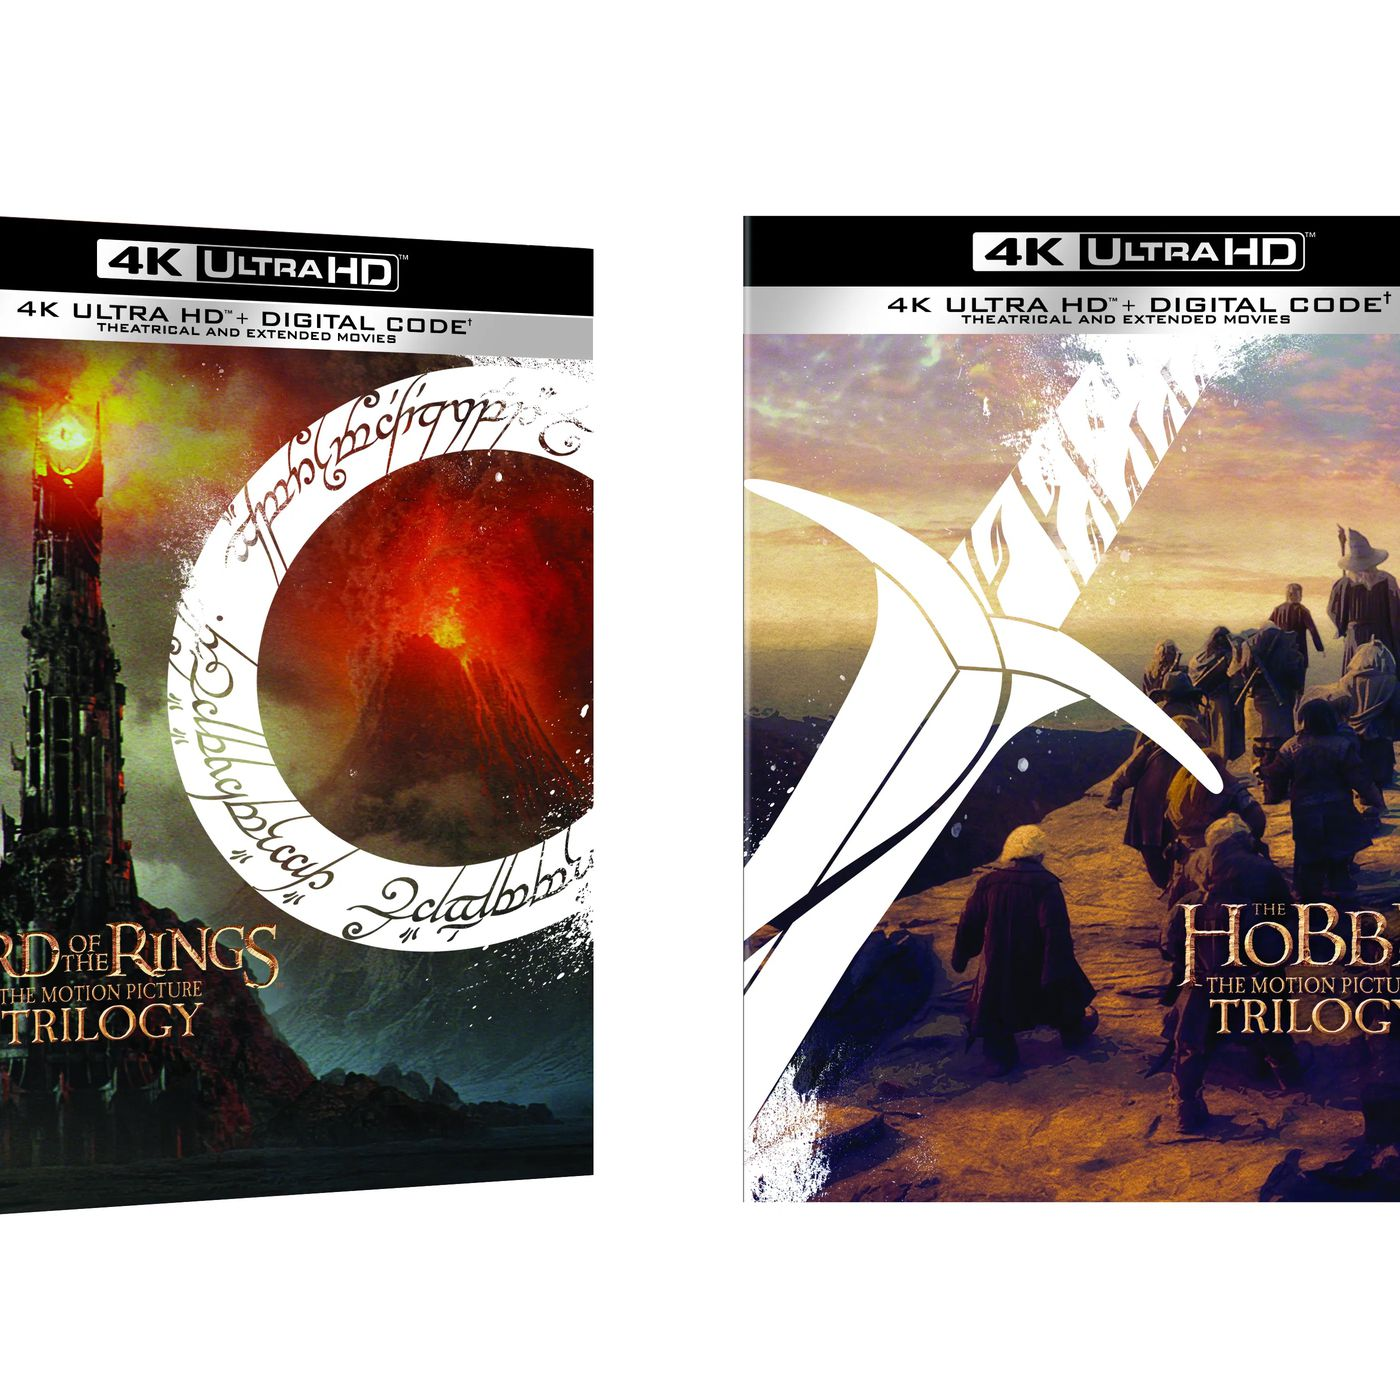 The Lord Of The Rings And The Hobbit Trilogies Are Being Released On 4k Ultra Hd Blu Ray The Verge